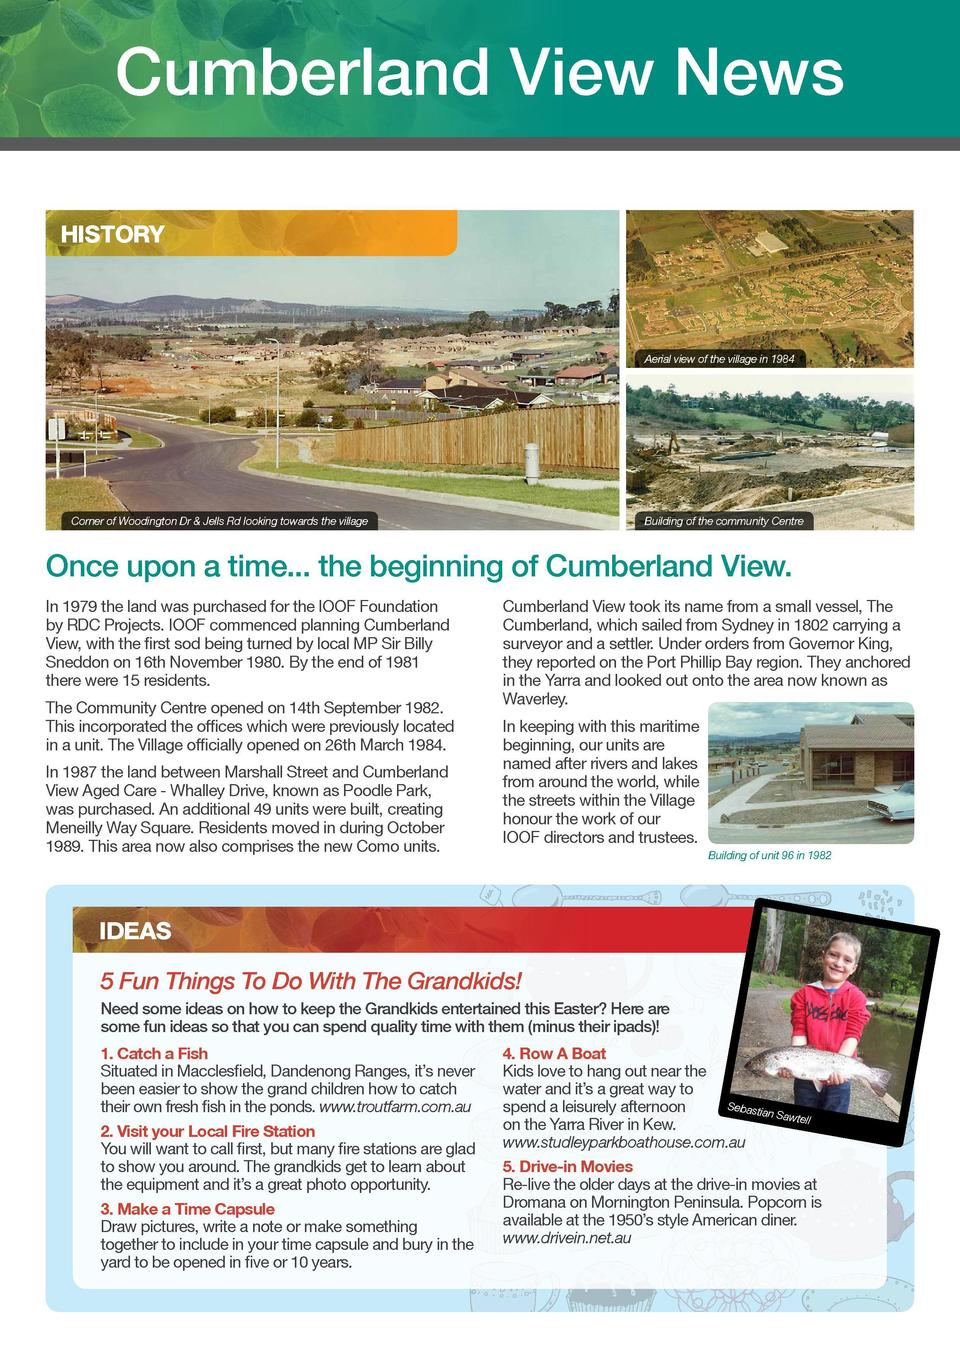 cumberland view  Cumberland View News  better living, quality living  ENTERTAINMENT HISTORY  Corner of Woodington Dr   Jel...